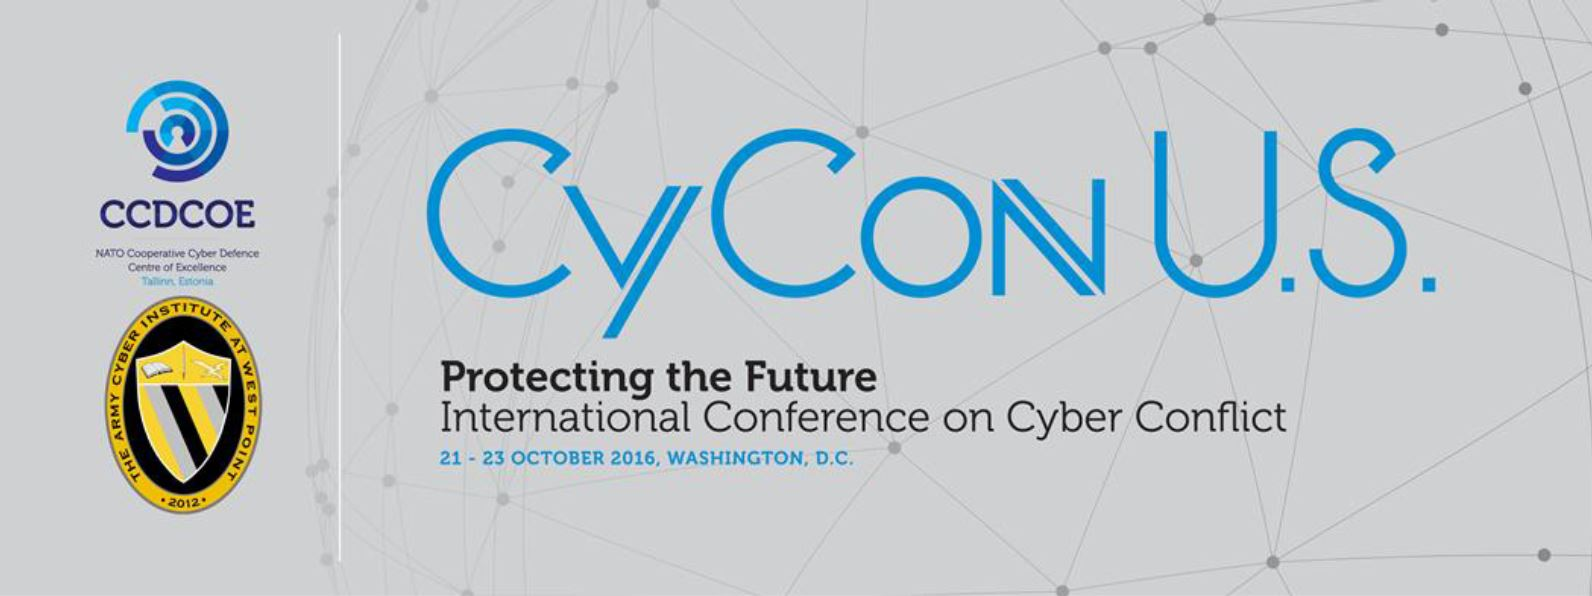 CyCon U.S. 2016 - Conference on Cyber Conflict